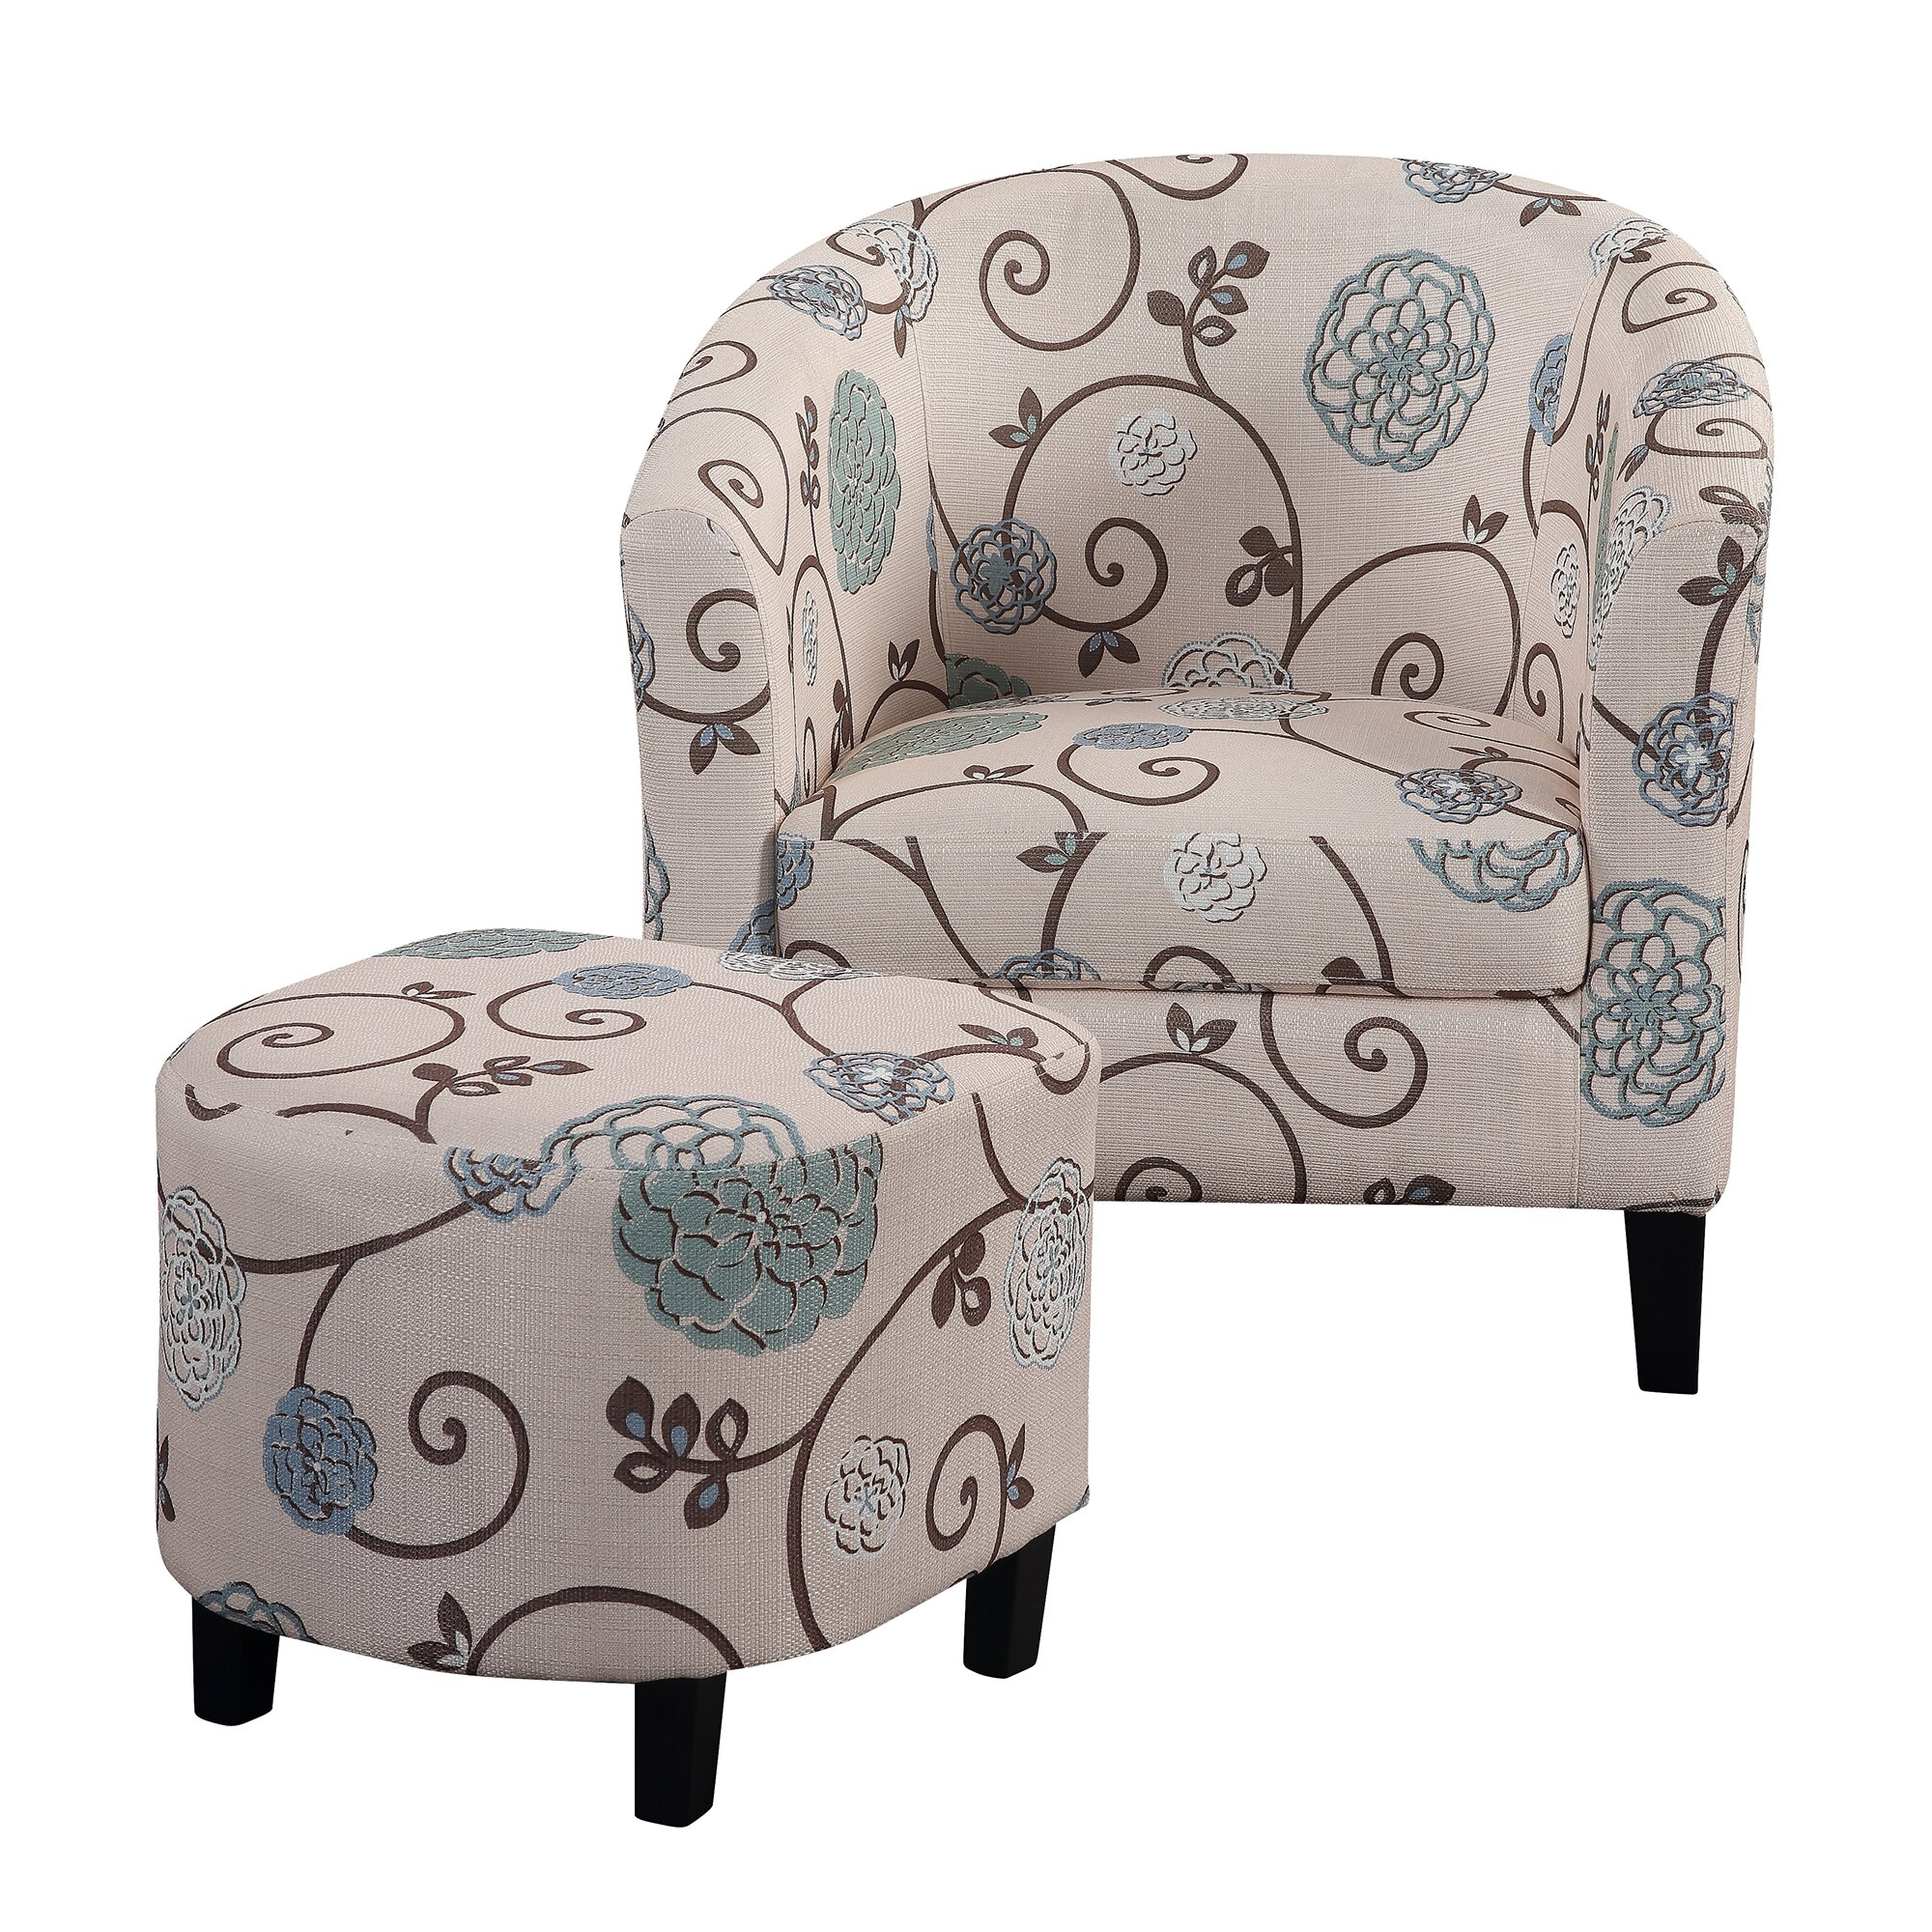 Lei Barrel Chair And Ottoman With Regard To Jazouli Linen Barrel Chairs And Ottoman (View 14 of 15)